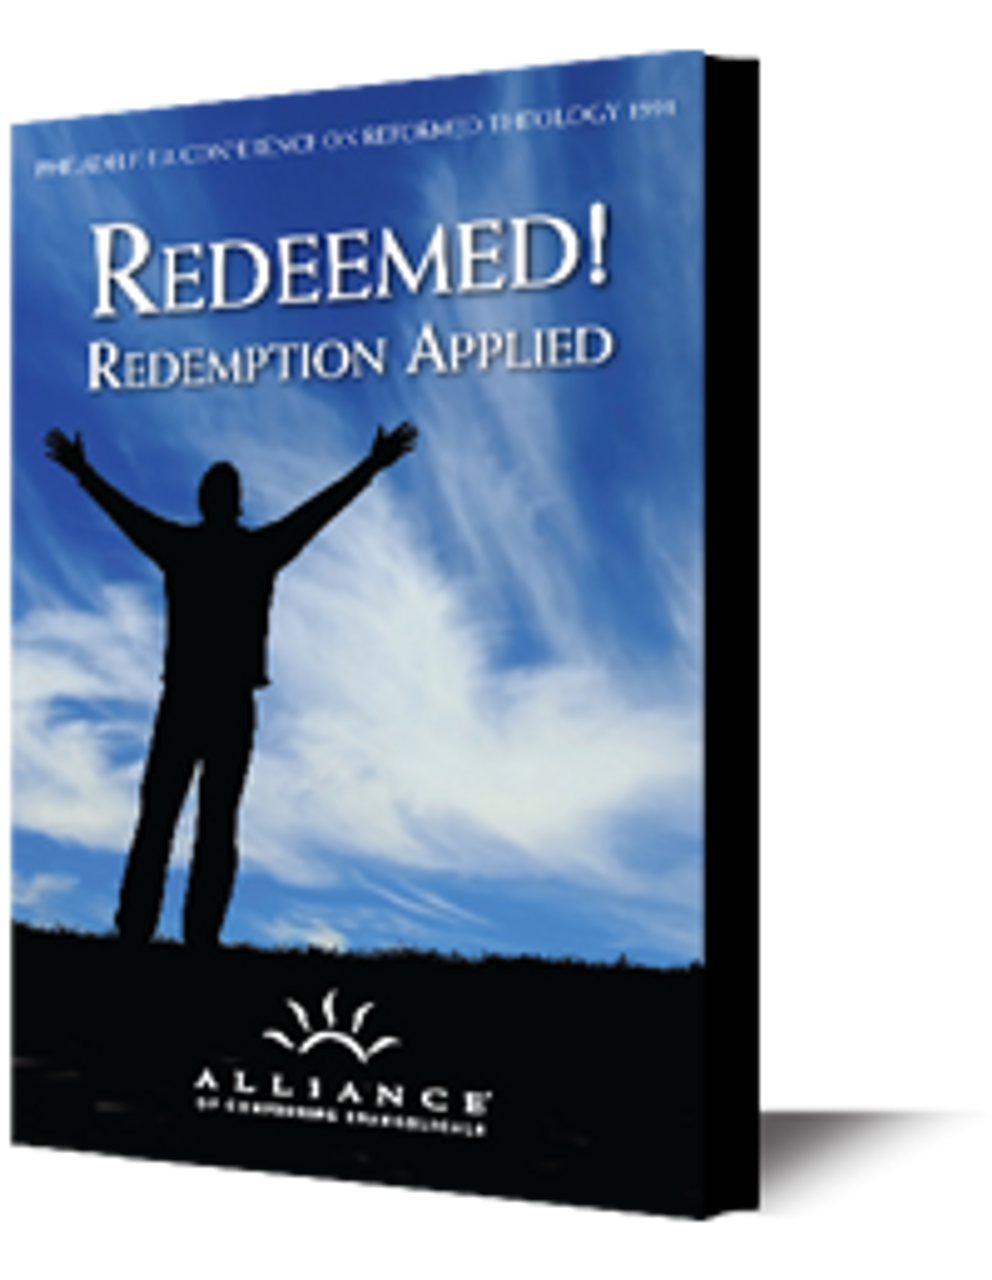 Redeemed! Redemption Applied PCRT 1991 (CD Set)